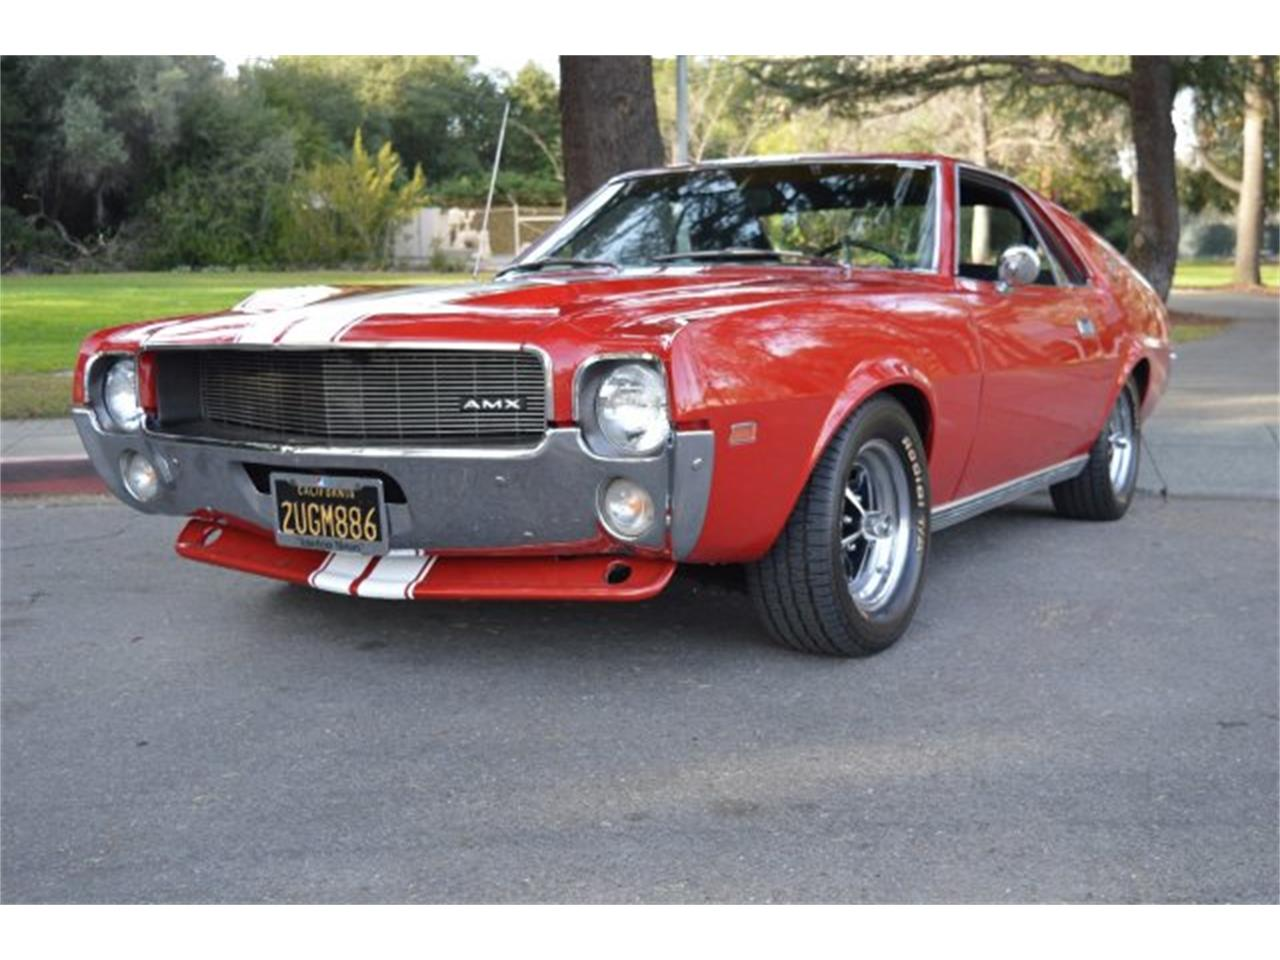 Large Picture of 1968 AMC AMX Offered by American Motors Customs and Classics - JTT8